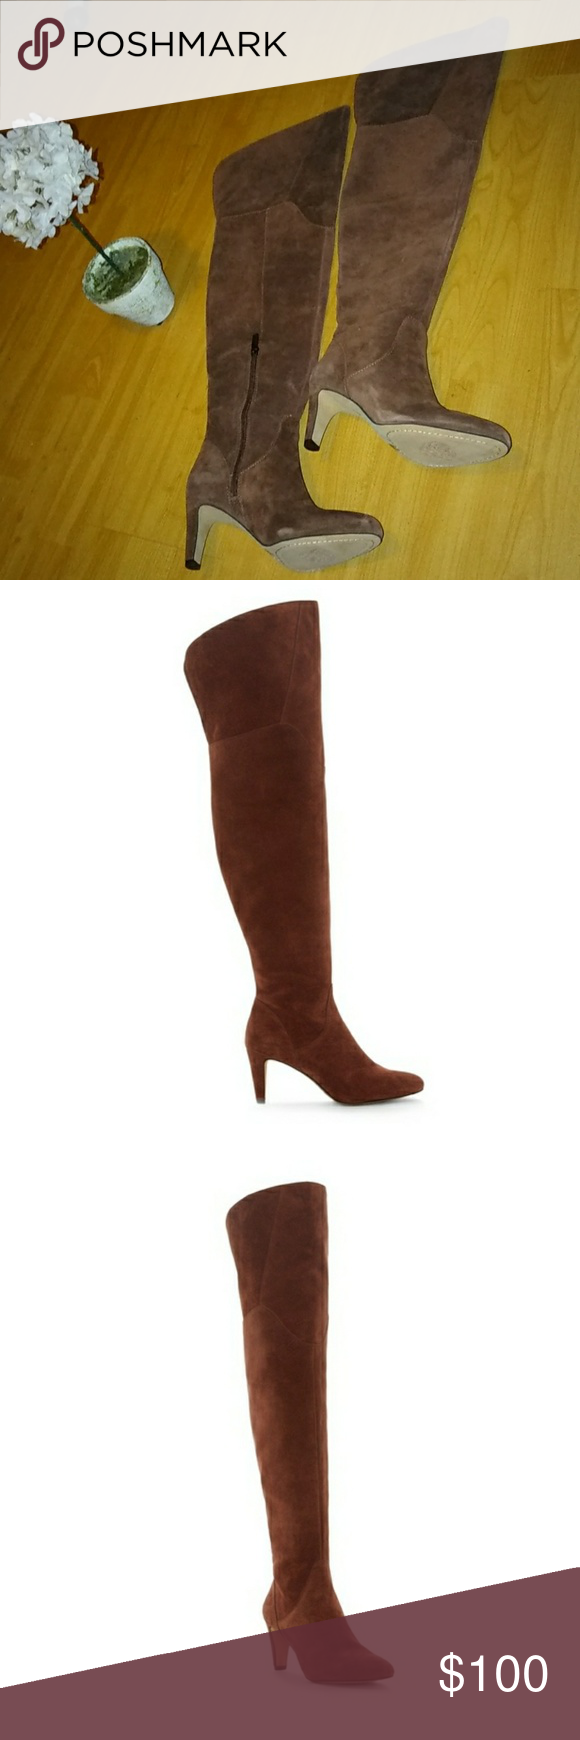 6c75cf83831 Vince Camuto armaceli over the knee boots NWT size 6M Vince Camuto Armaceli  Chocolate truffle color. Swathed in suede with a thigh-high shaft